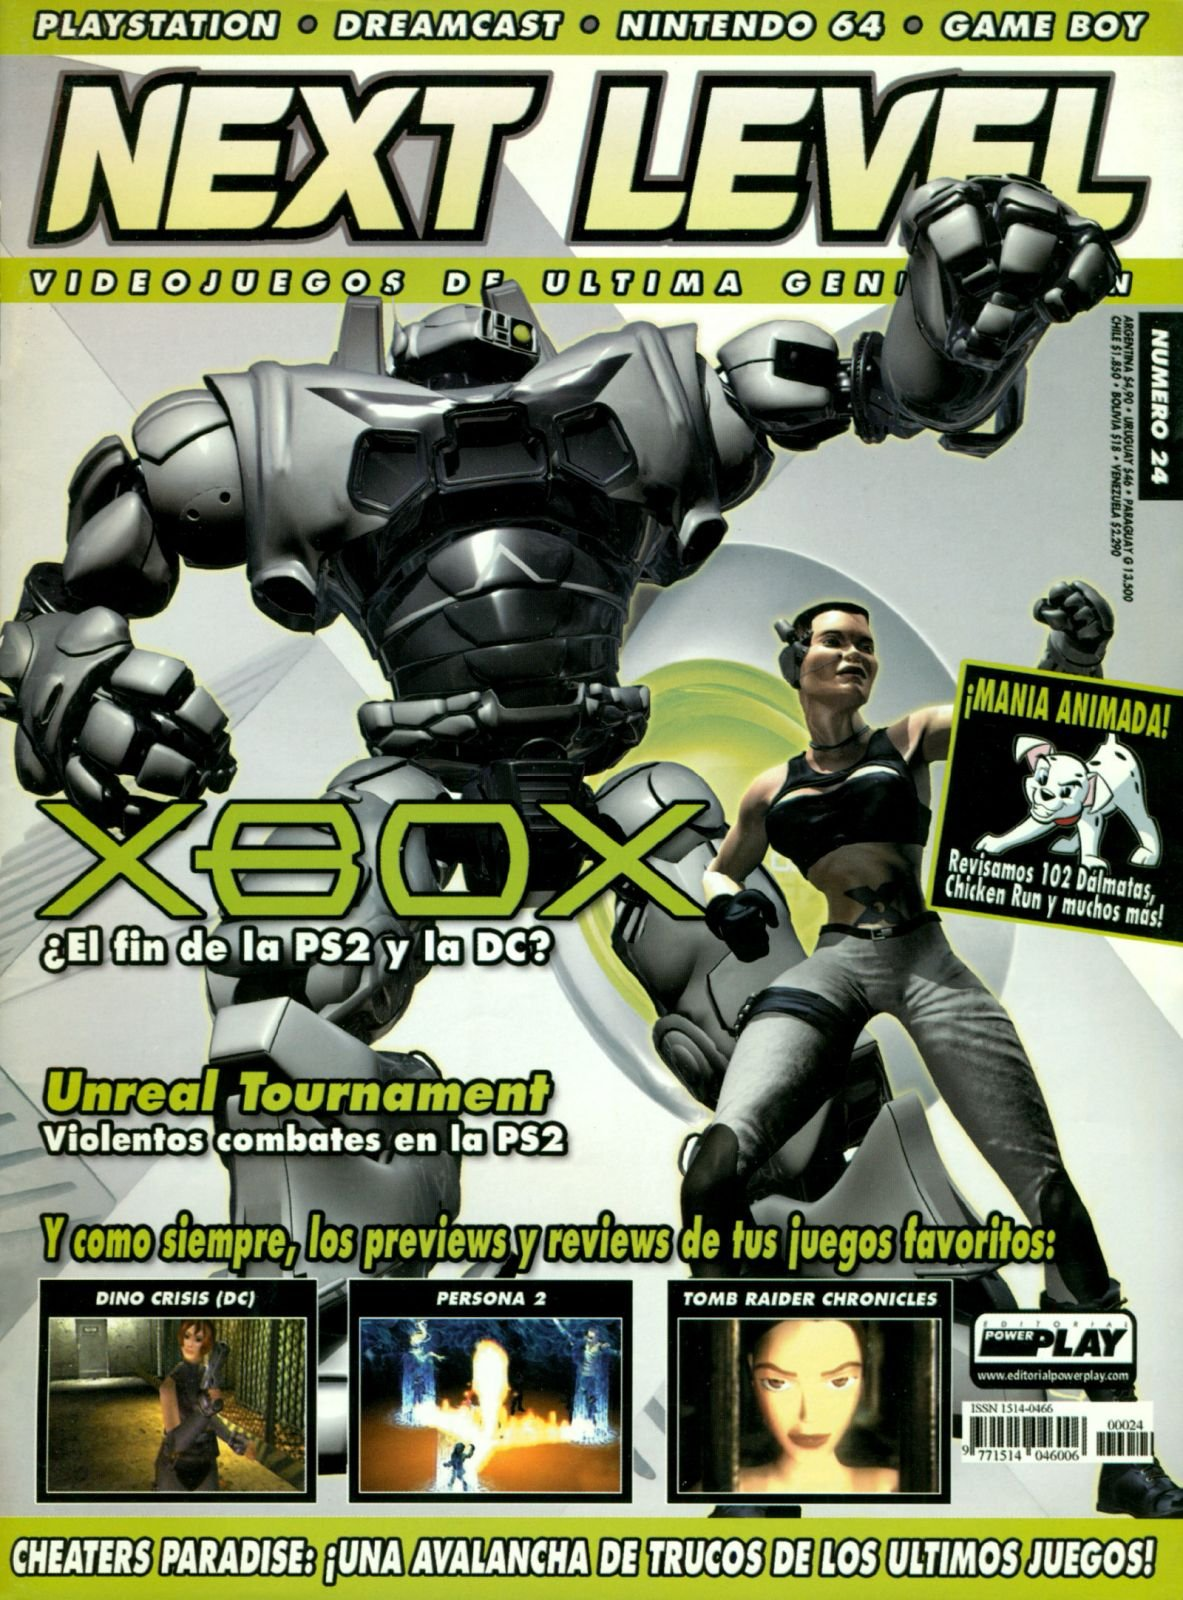 Next Level 24 January 2001